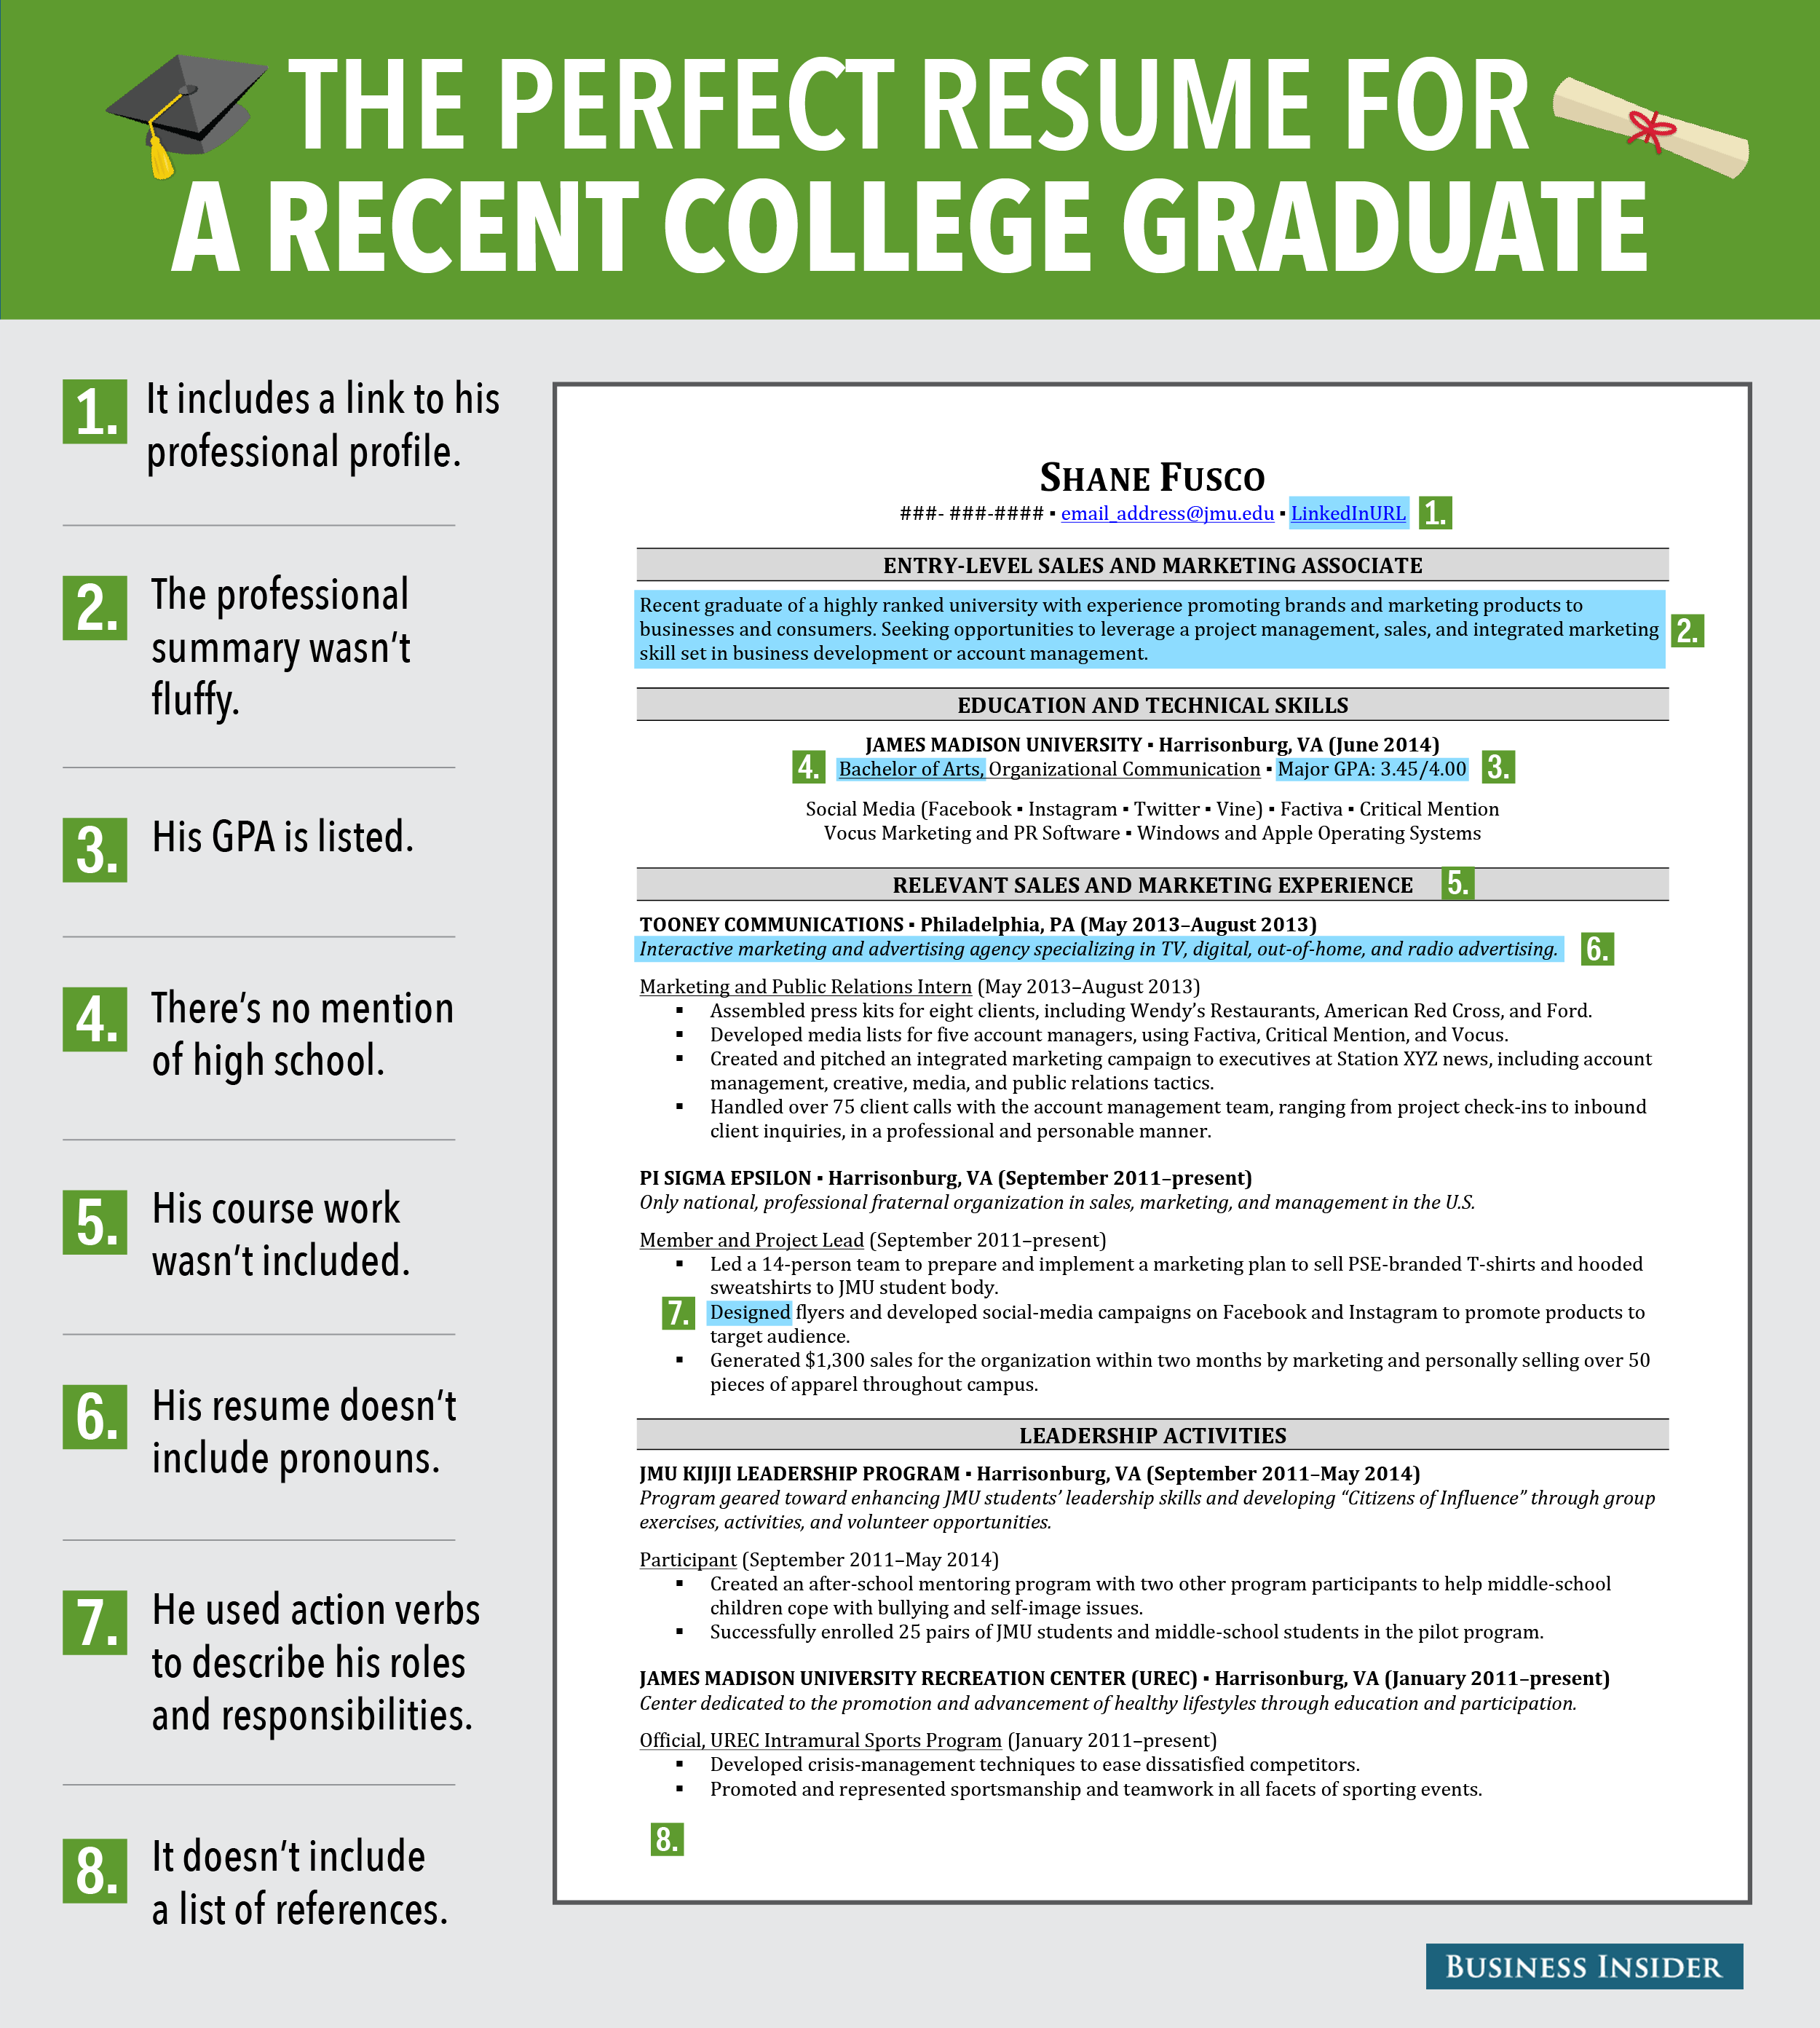 8 Reasons This Is An Excellent Resume For A Recent College Graduate  Business Insider